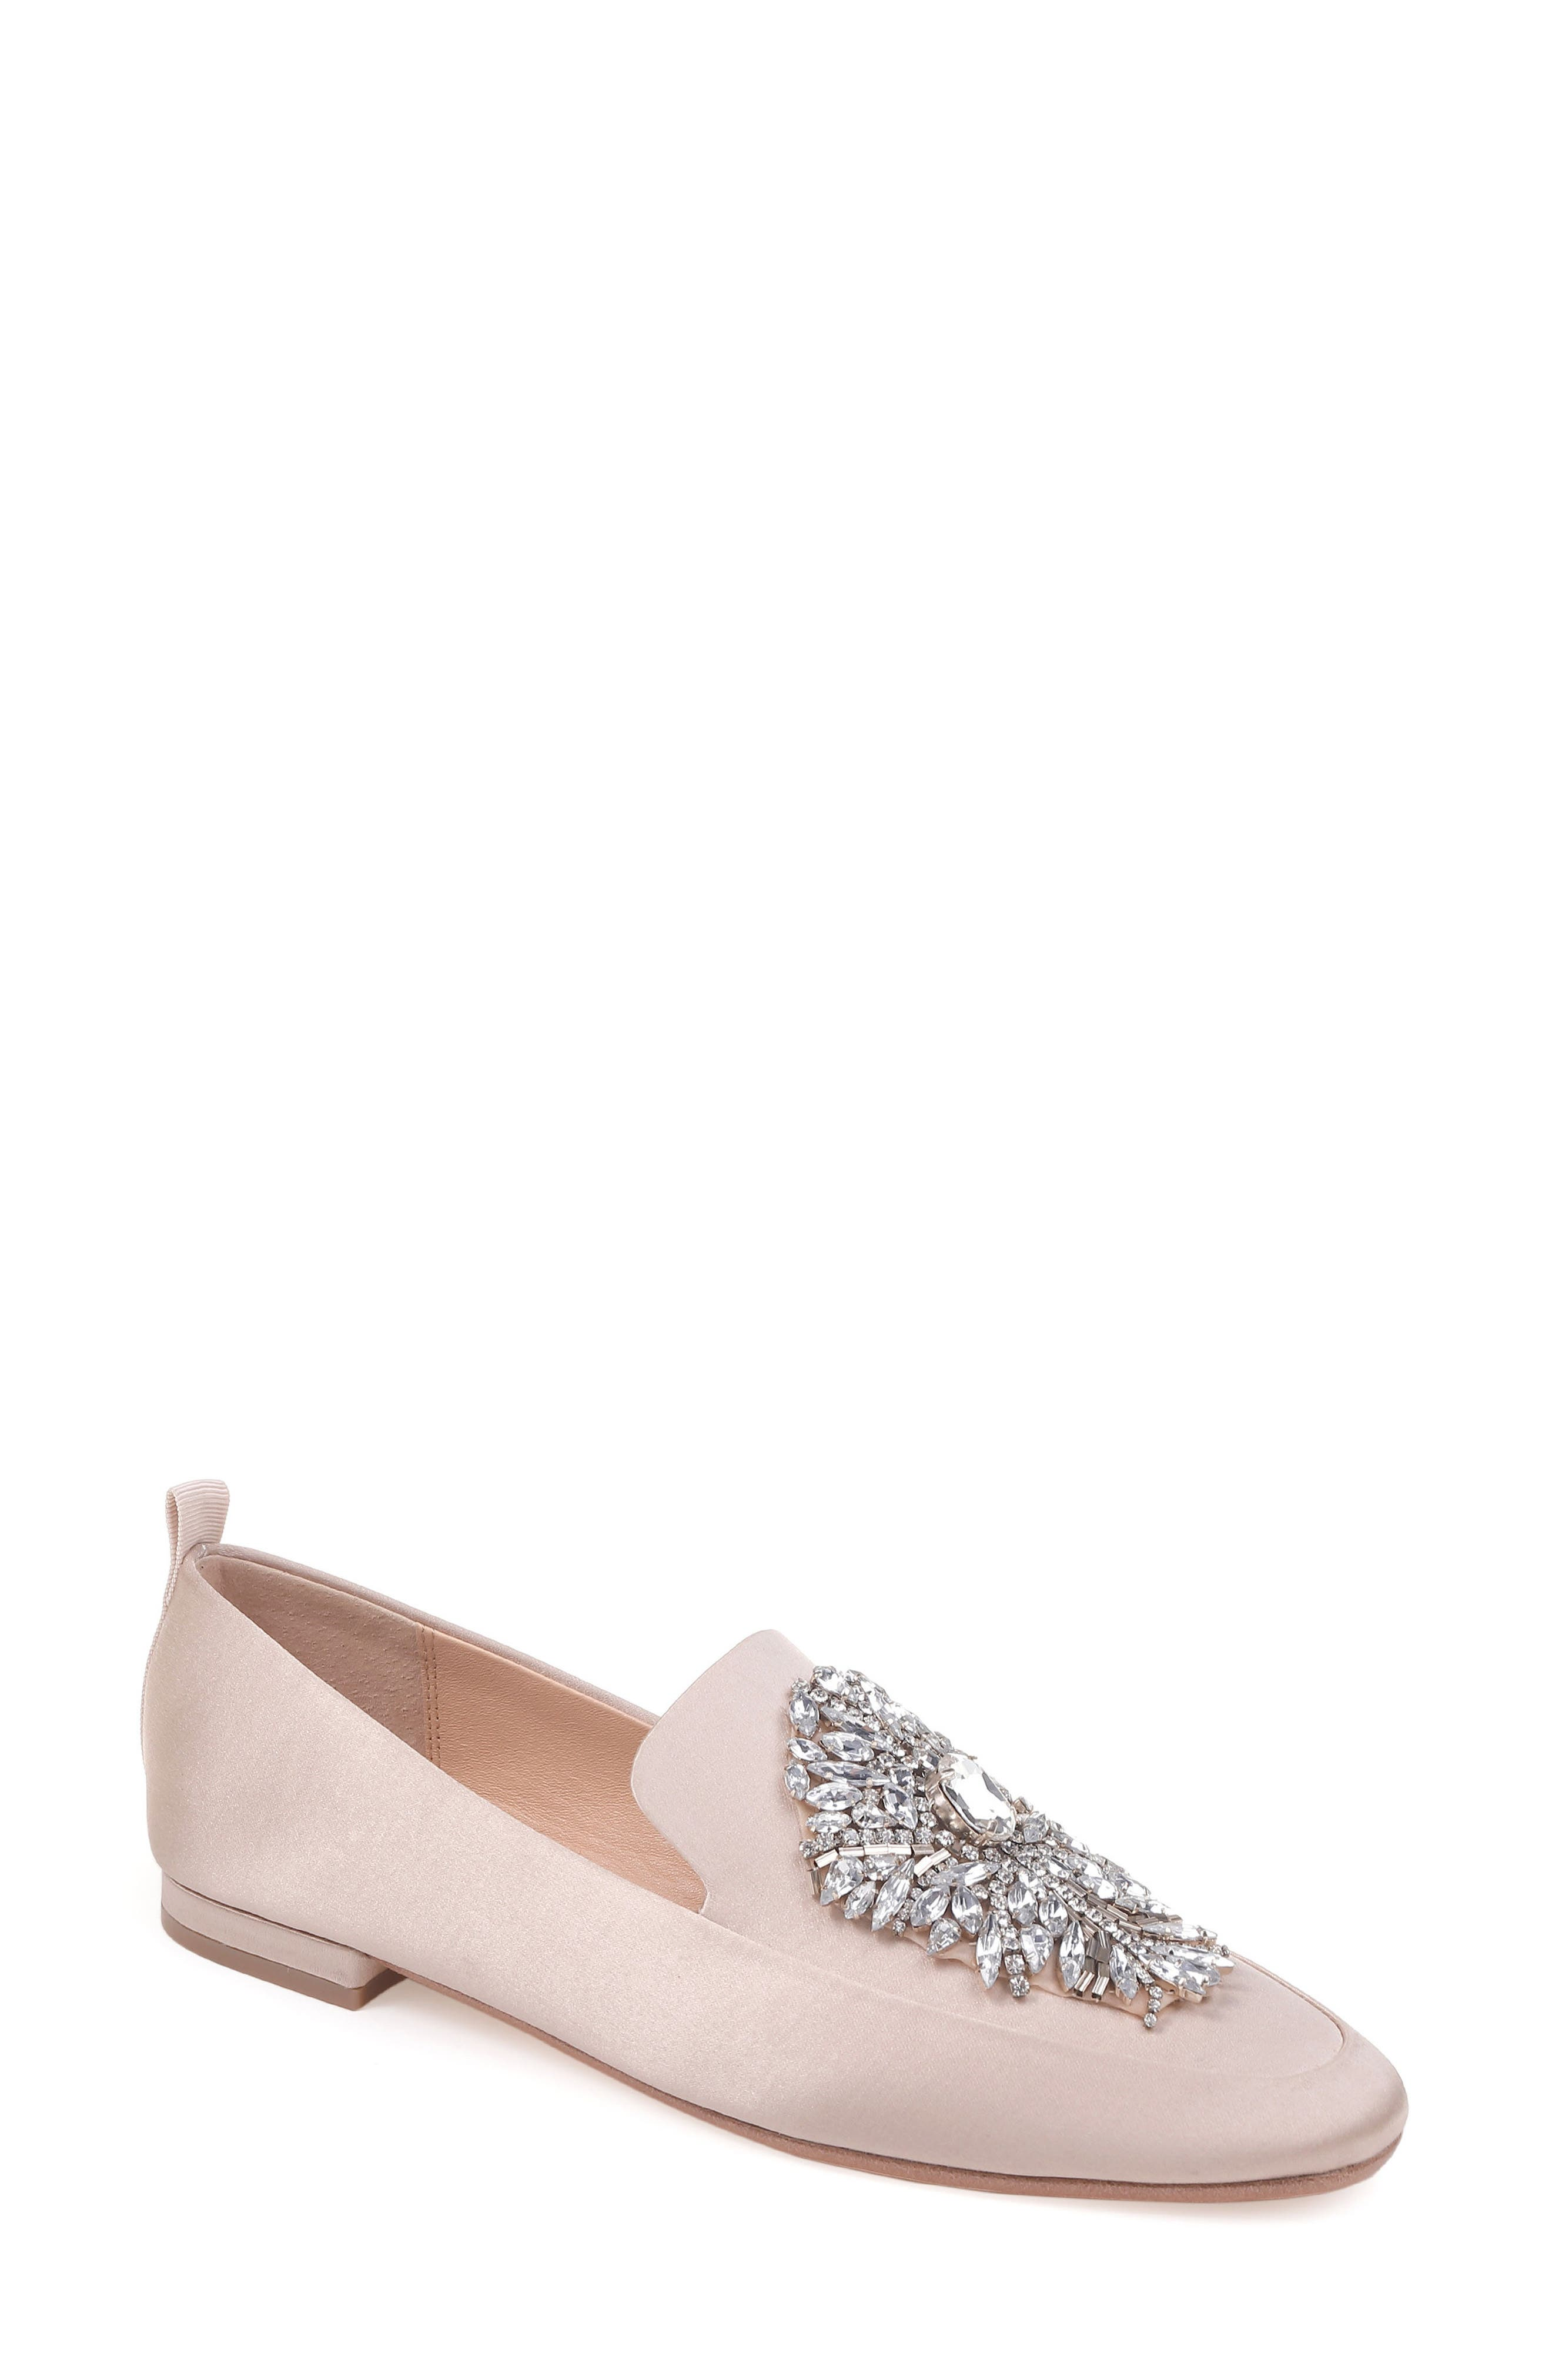 Salma Crystal Embellished Loafer,                             Main thumbnail 1, color,                             Nude Satin